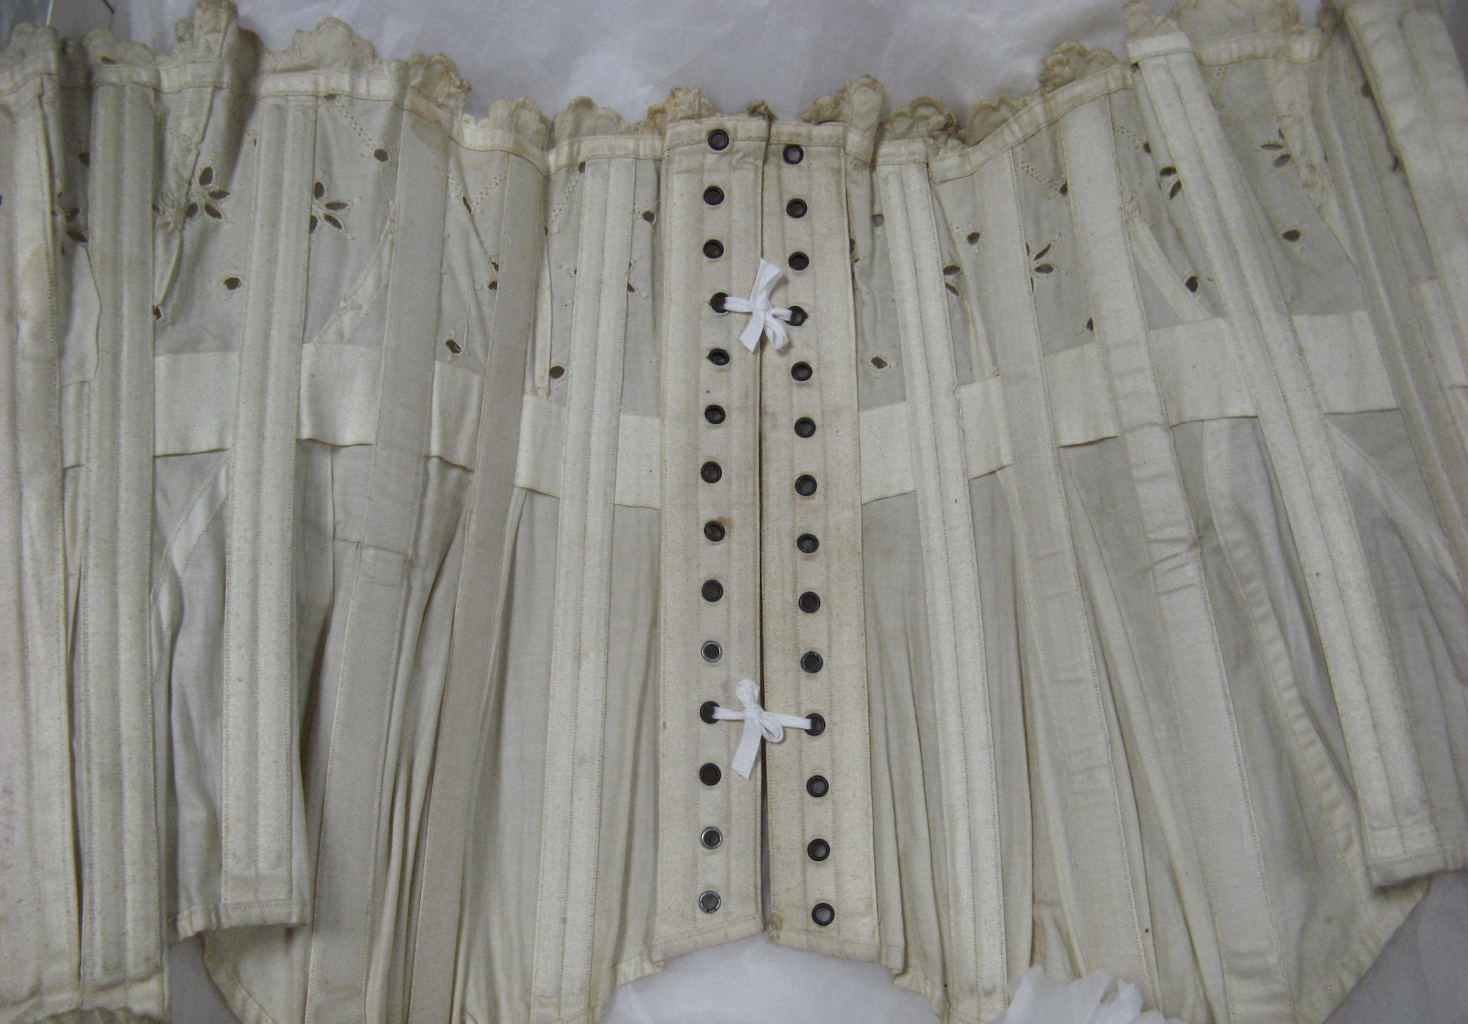 1905 Tropical lawn corset. Photo by Morúa. Used with permission of Leicestershire County Council Museum Services, Symington Collection